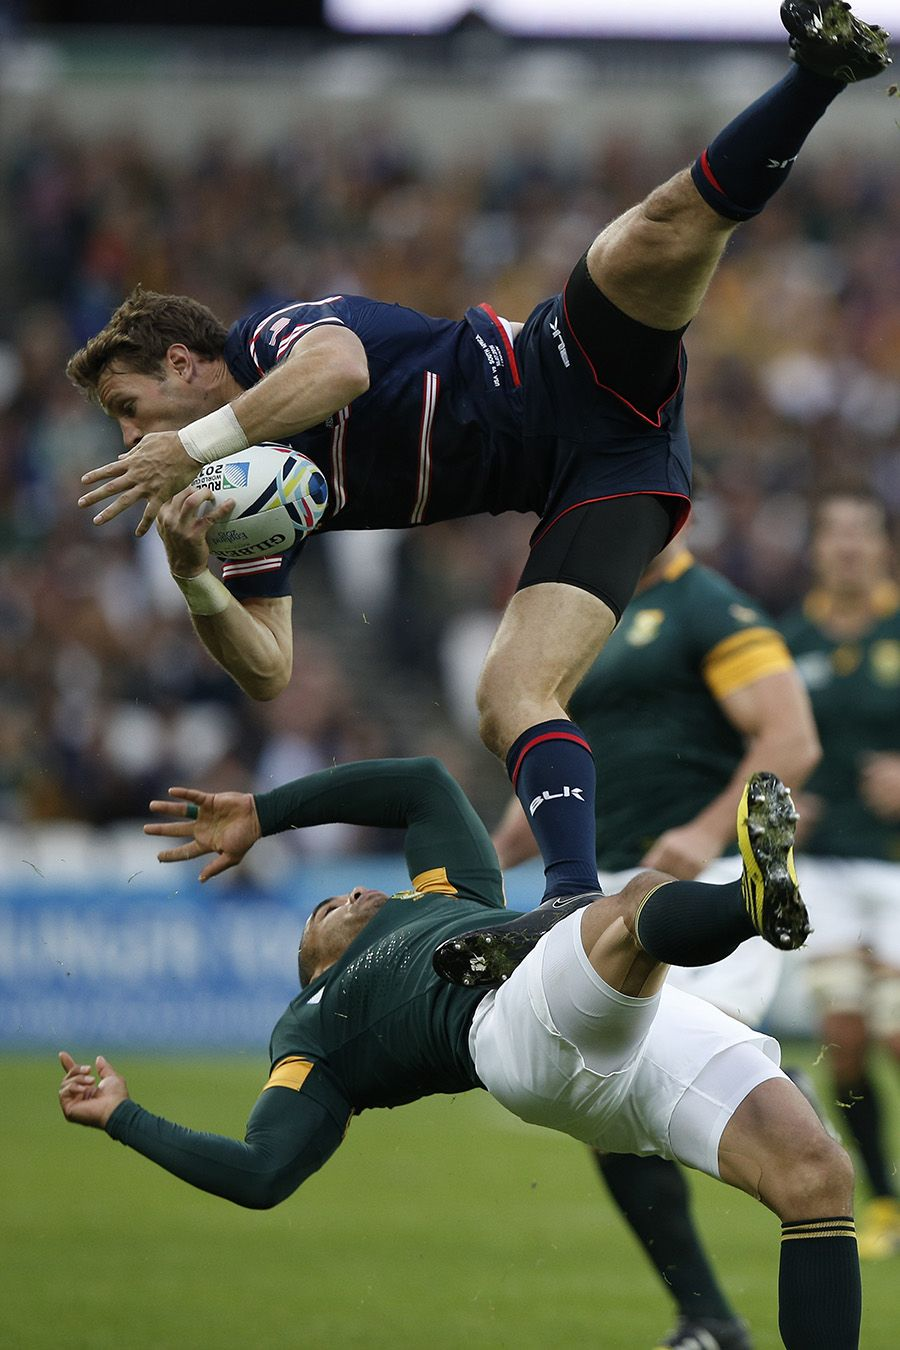 Bryan Habana of South Africa collides with Blaine Scully of the United States